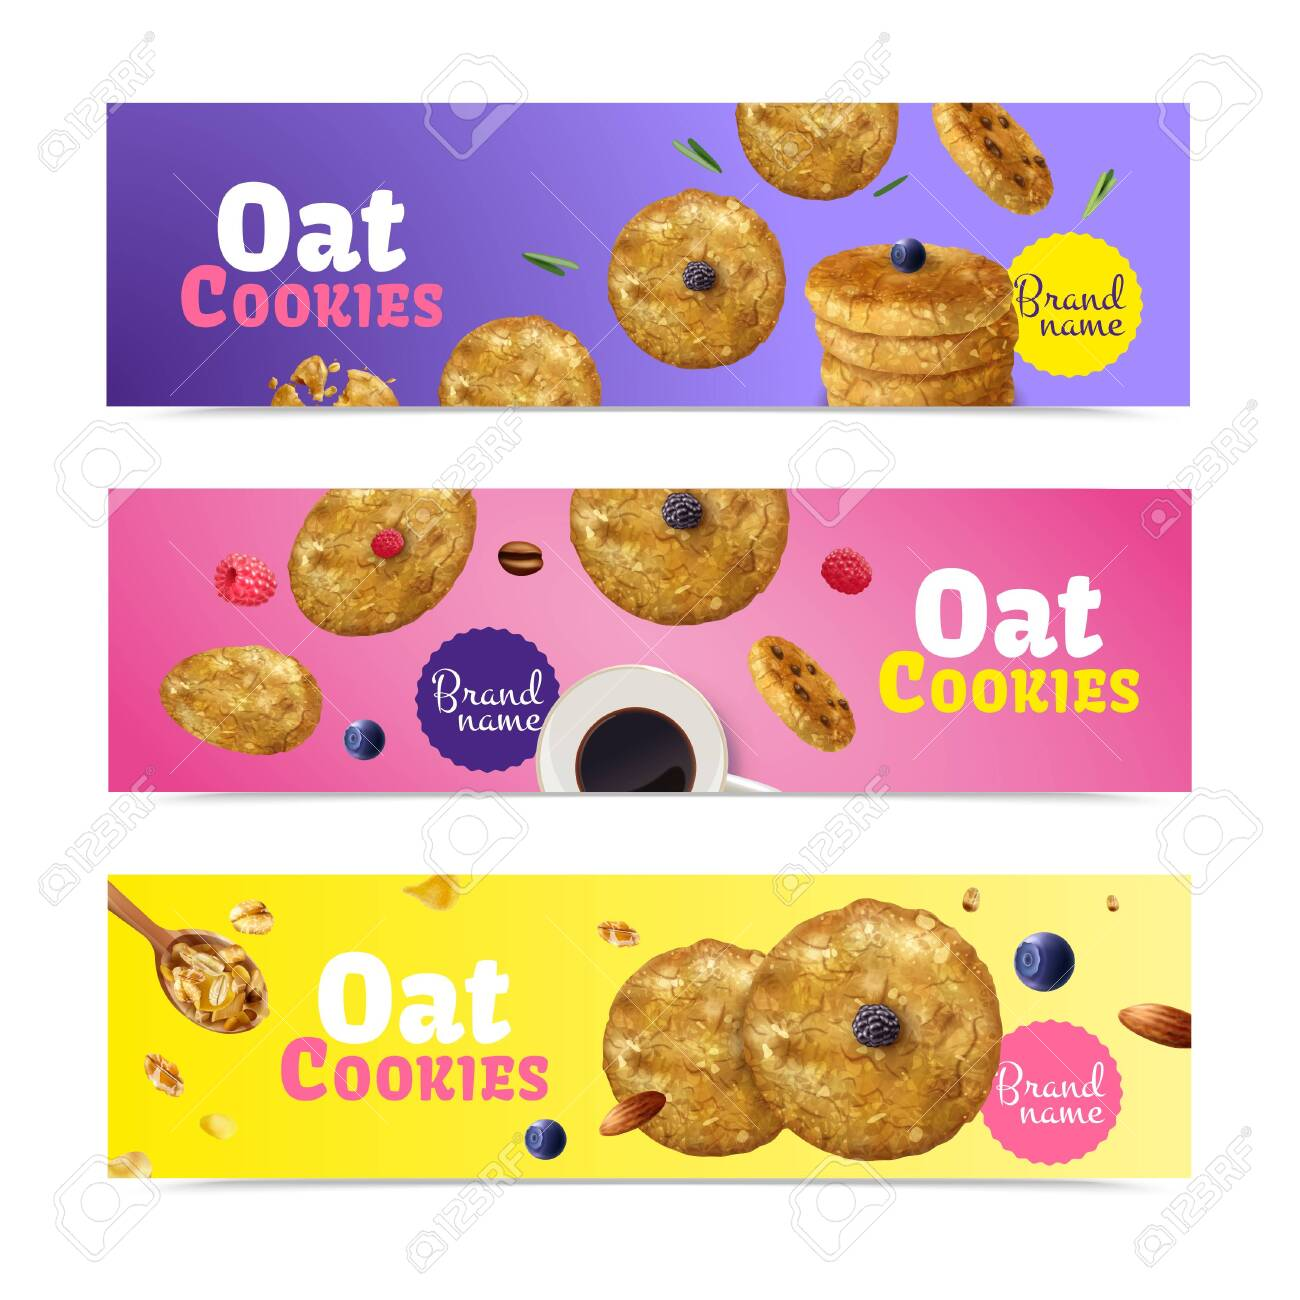 Set Of Three Realistic Oat Cookies Horizontal Banners With Editable Royalty Free Cliparts Vectors And Stock Illustration Image 157605514